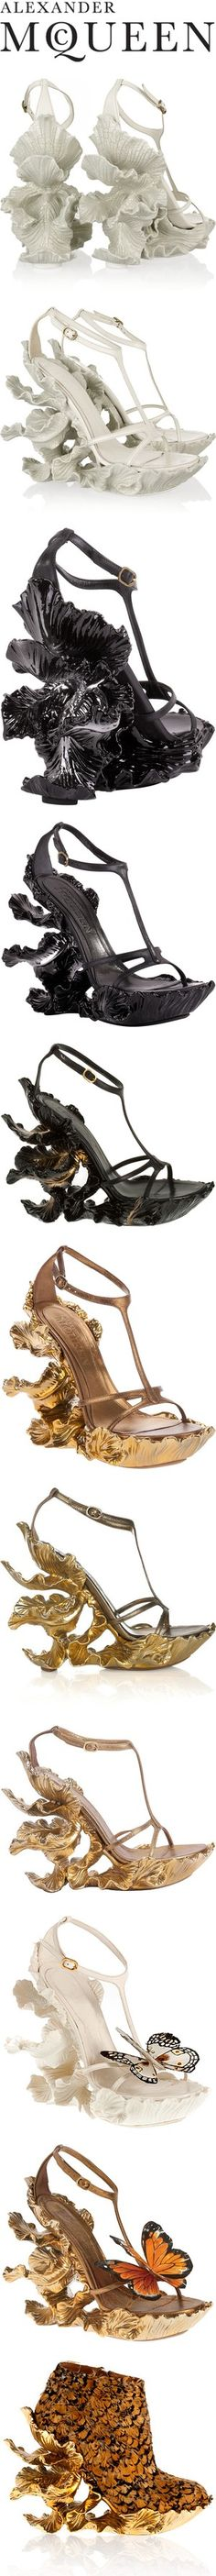 Alexander McQueen Shoes by cheshire-cat-1993 on Polyvore featuring text, backgrounds, words, quotes, logos, fillers, magazine, phrases, men and saying